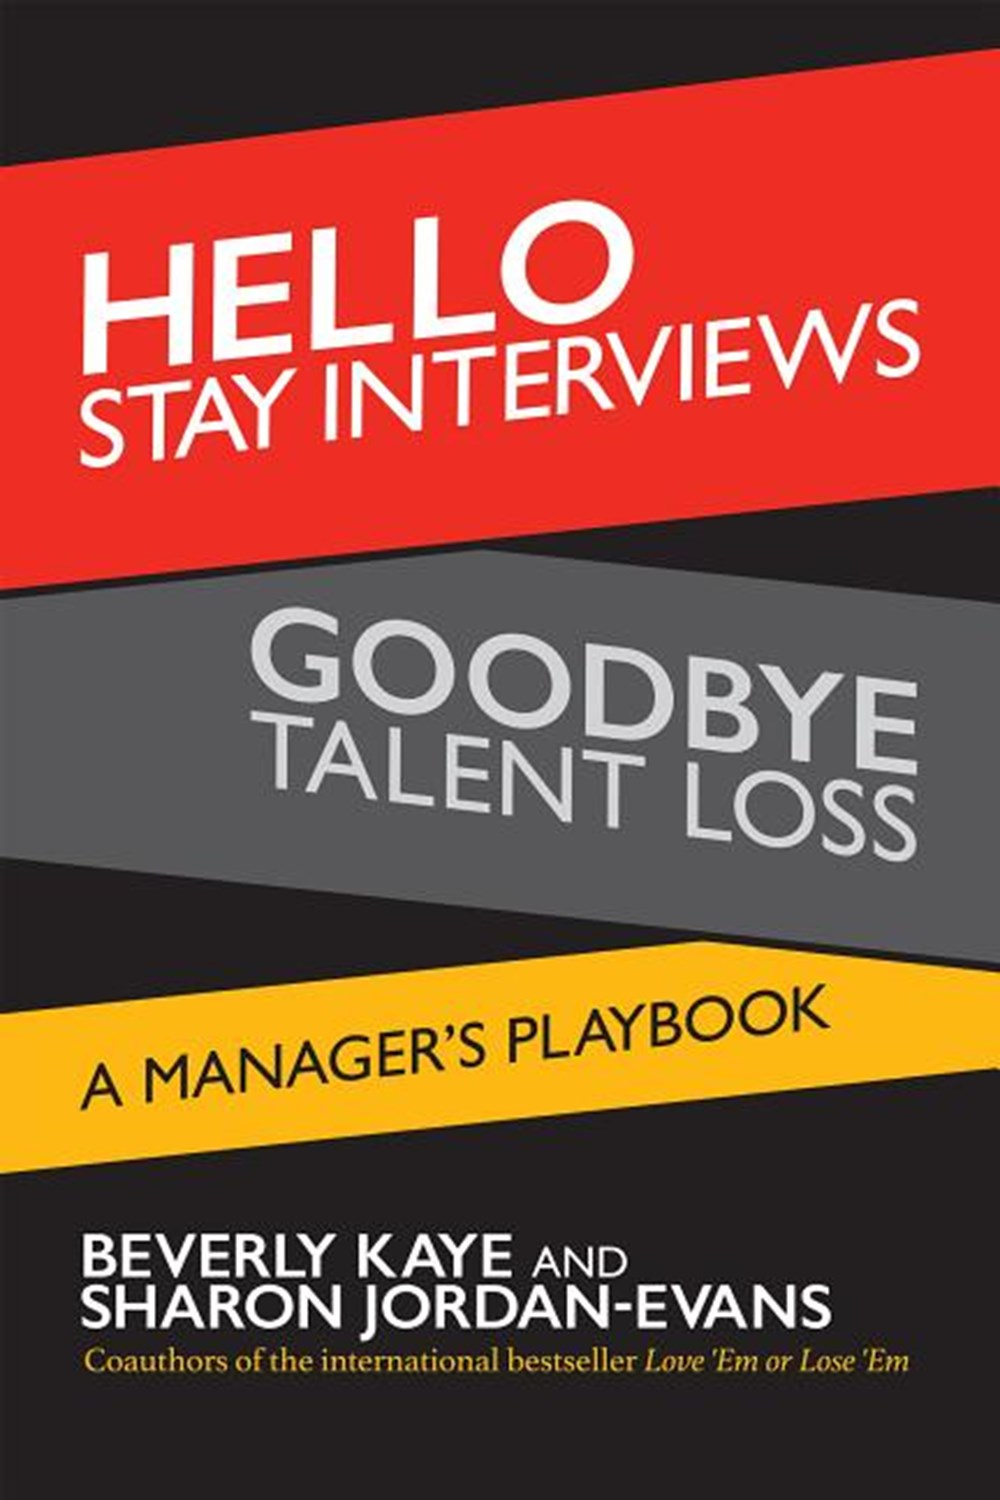 Hello Stay Interviews, Goodbye Talent Loss A Manager's Playbook